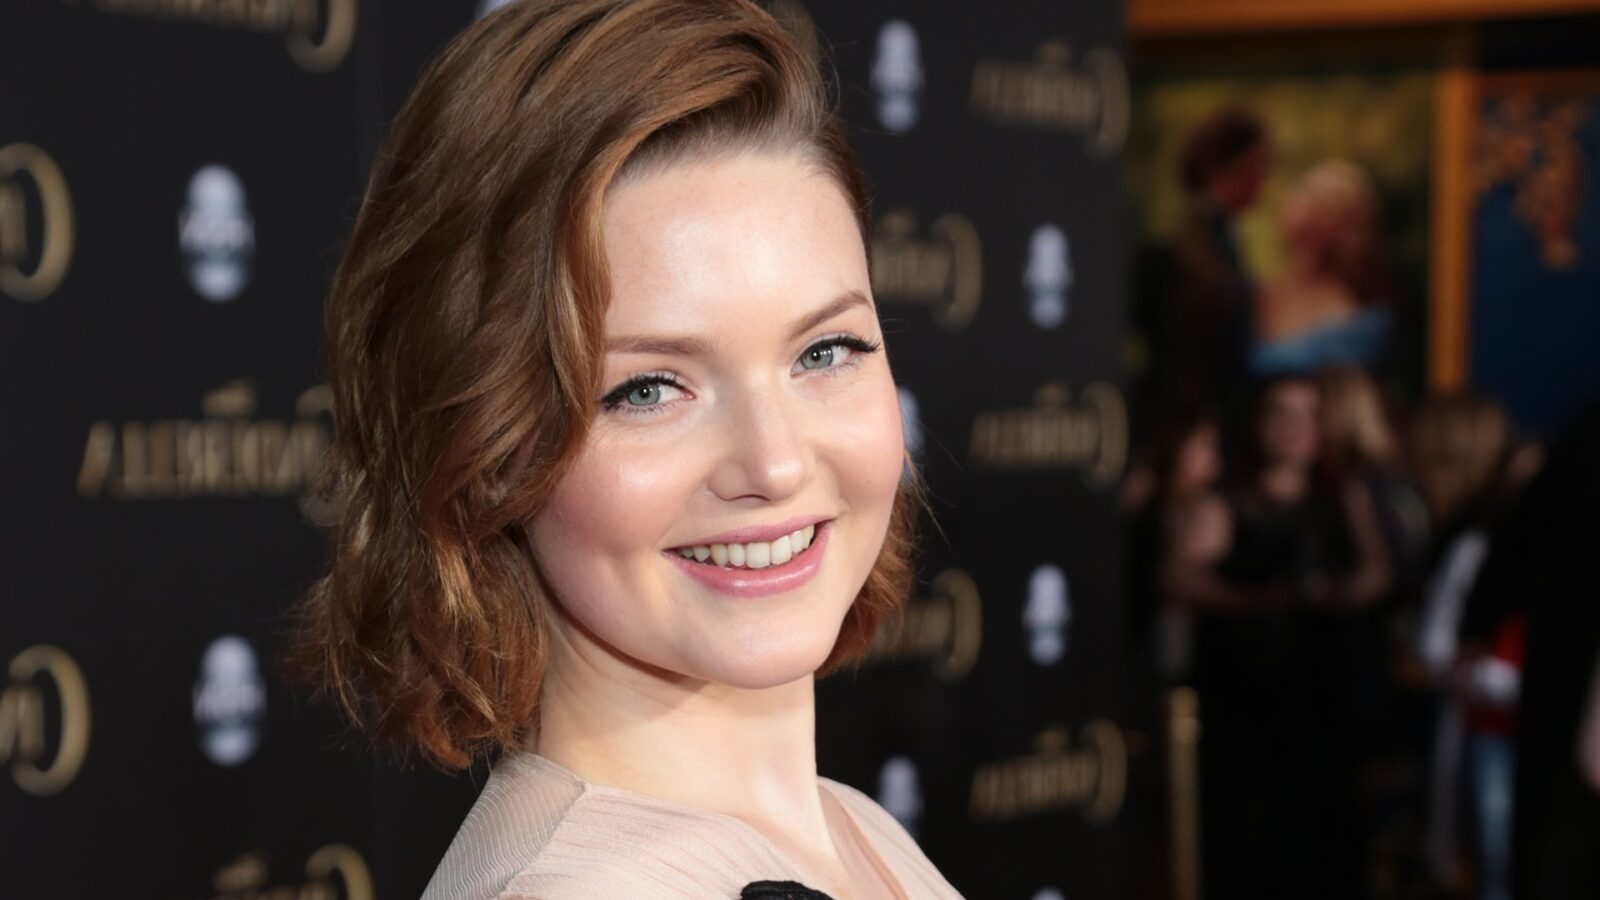 Download The Car Wallpaper Holliday Grainger Hd Wallpapers Free Download